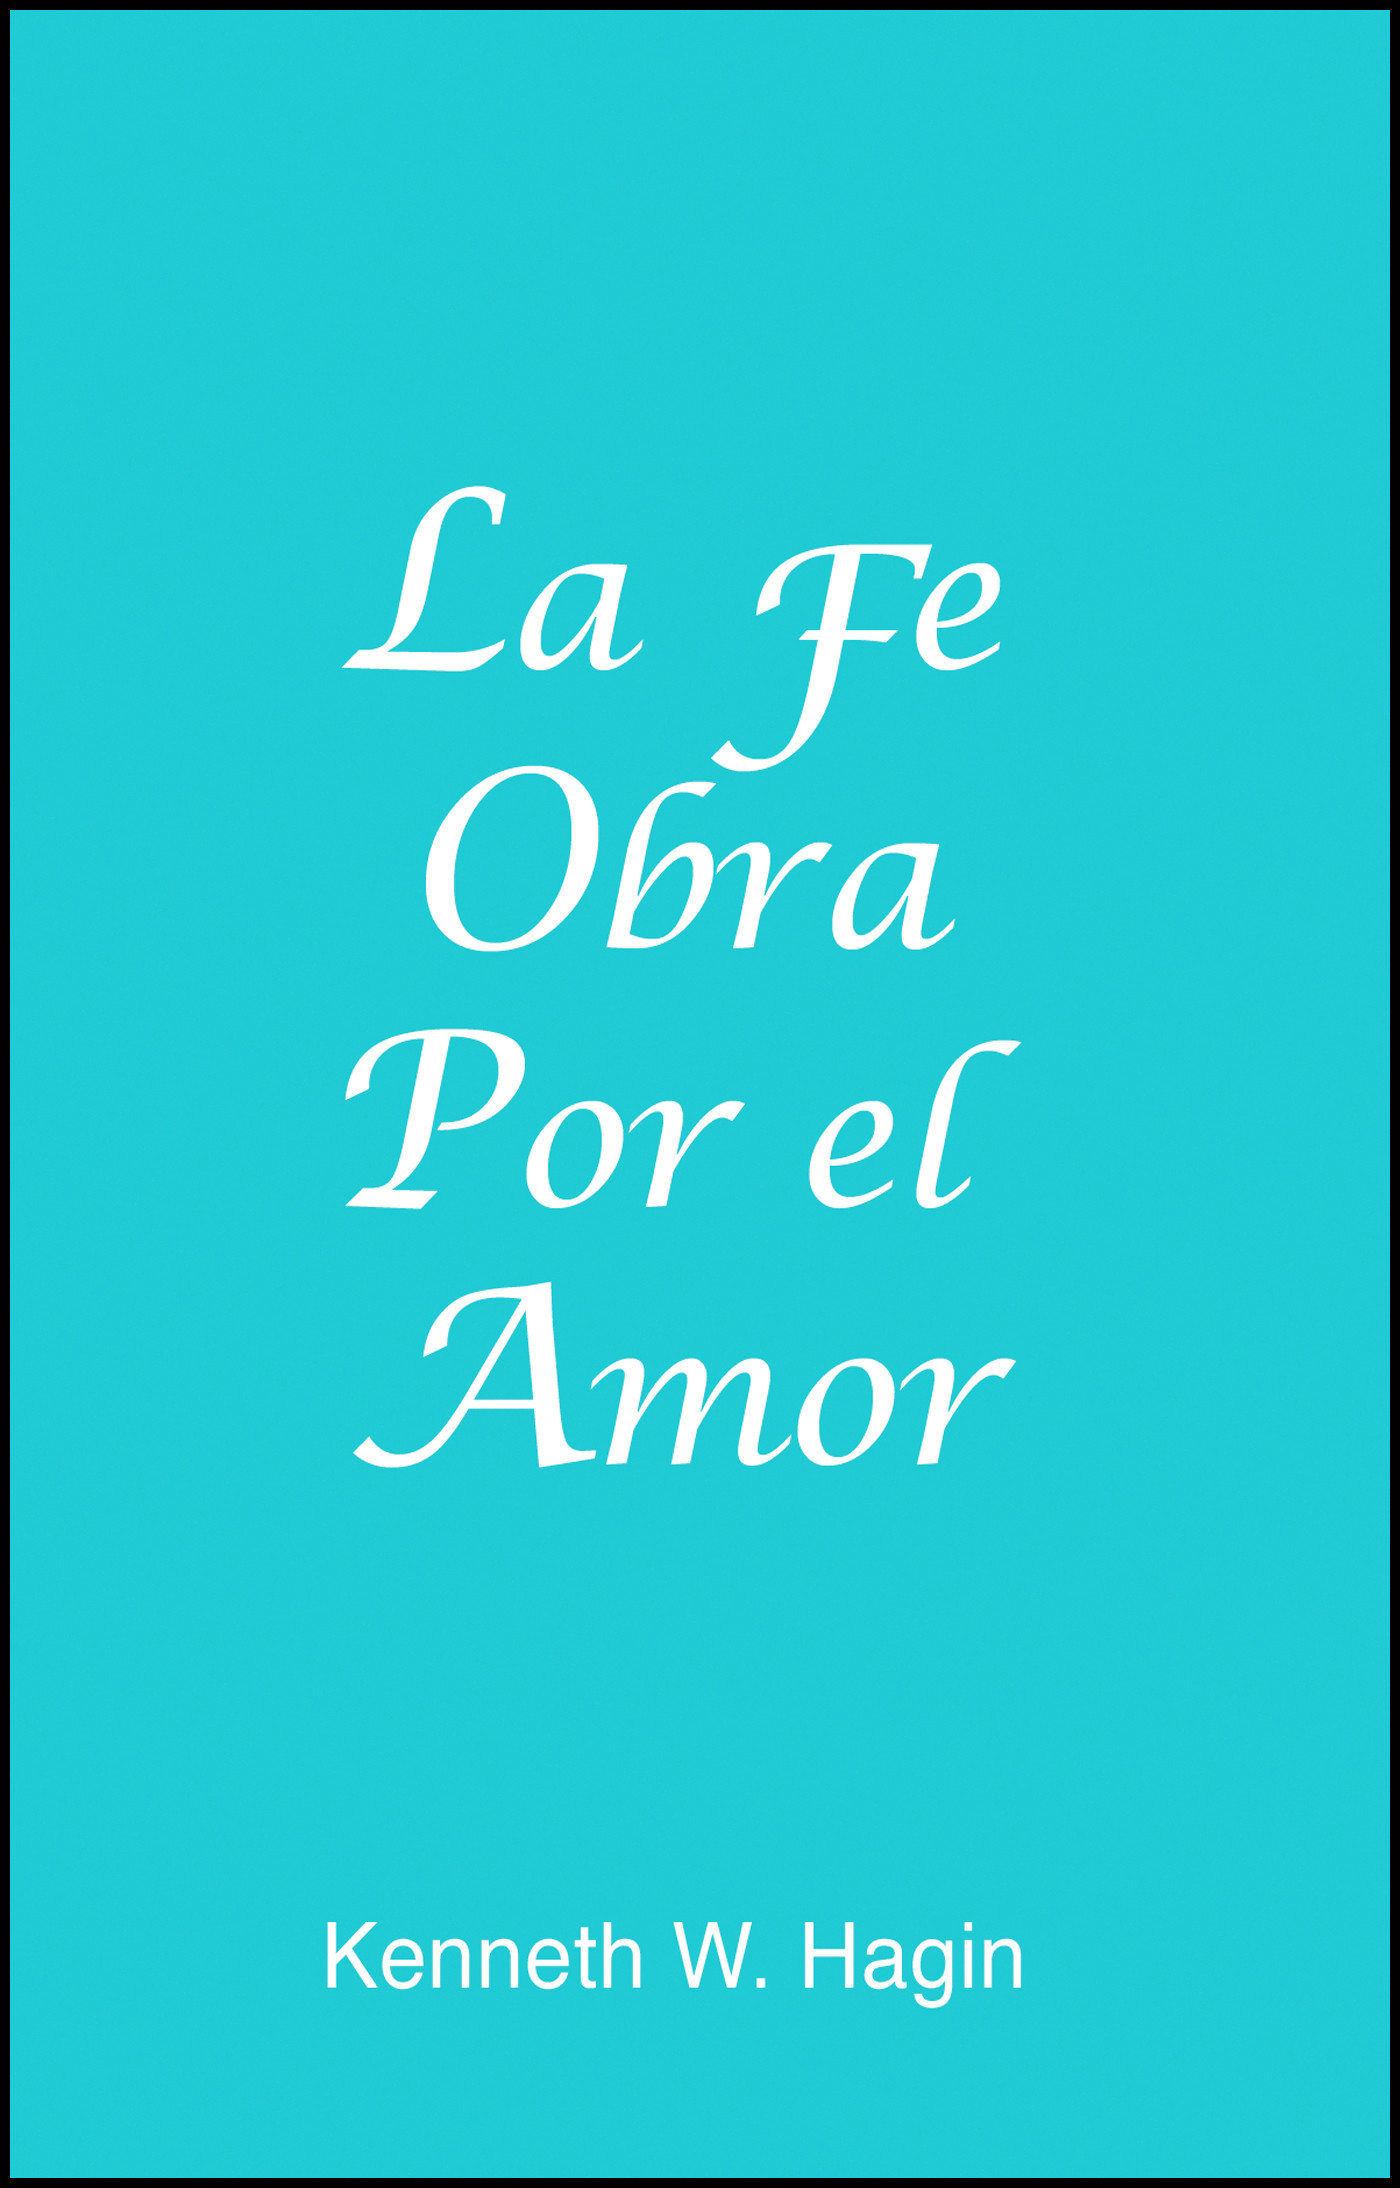 La Fe Obra Por El Amor (Faith Worketh by Love - Book)